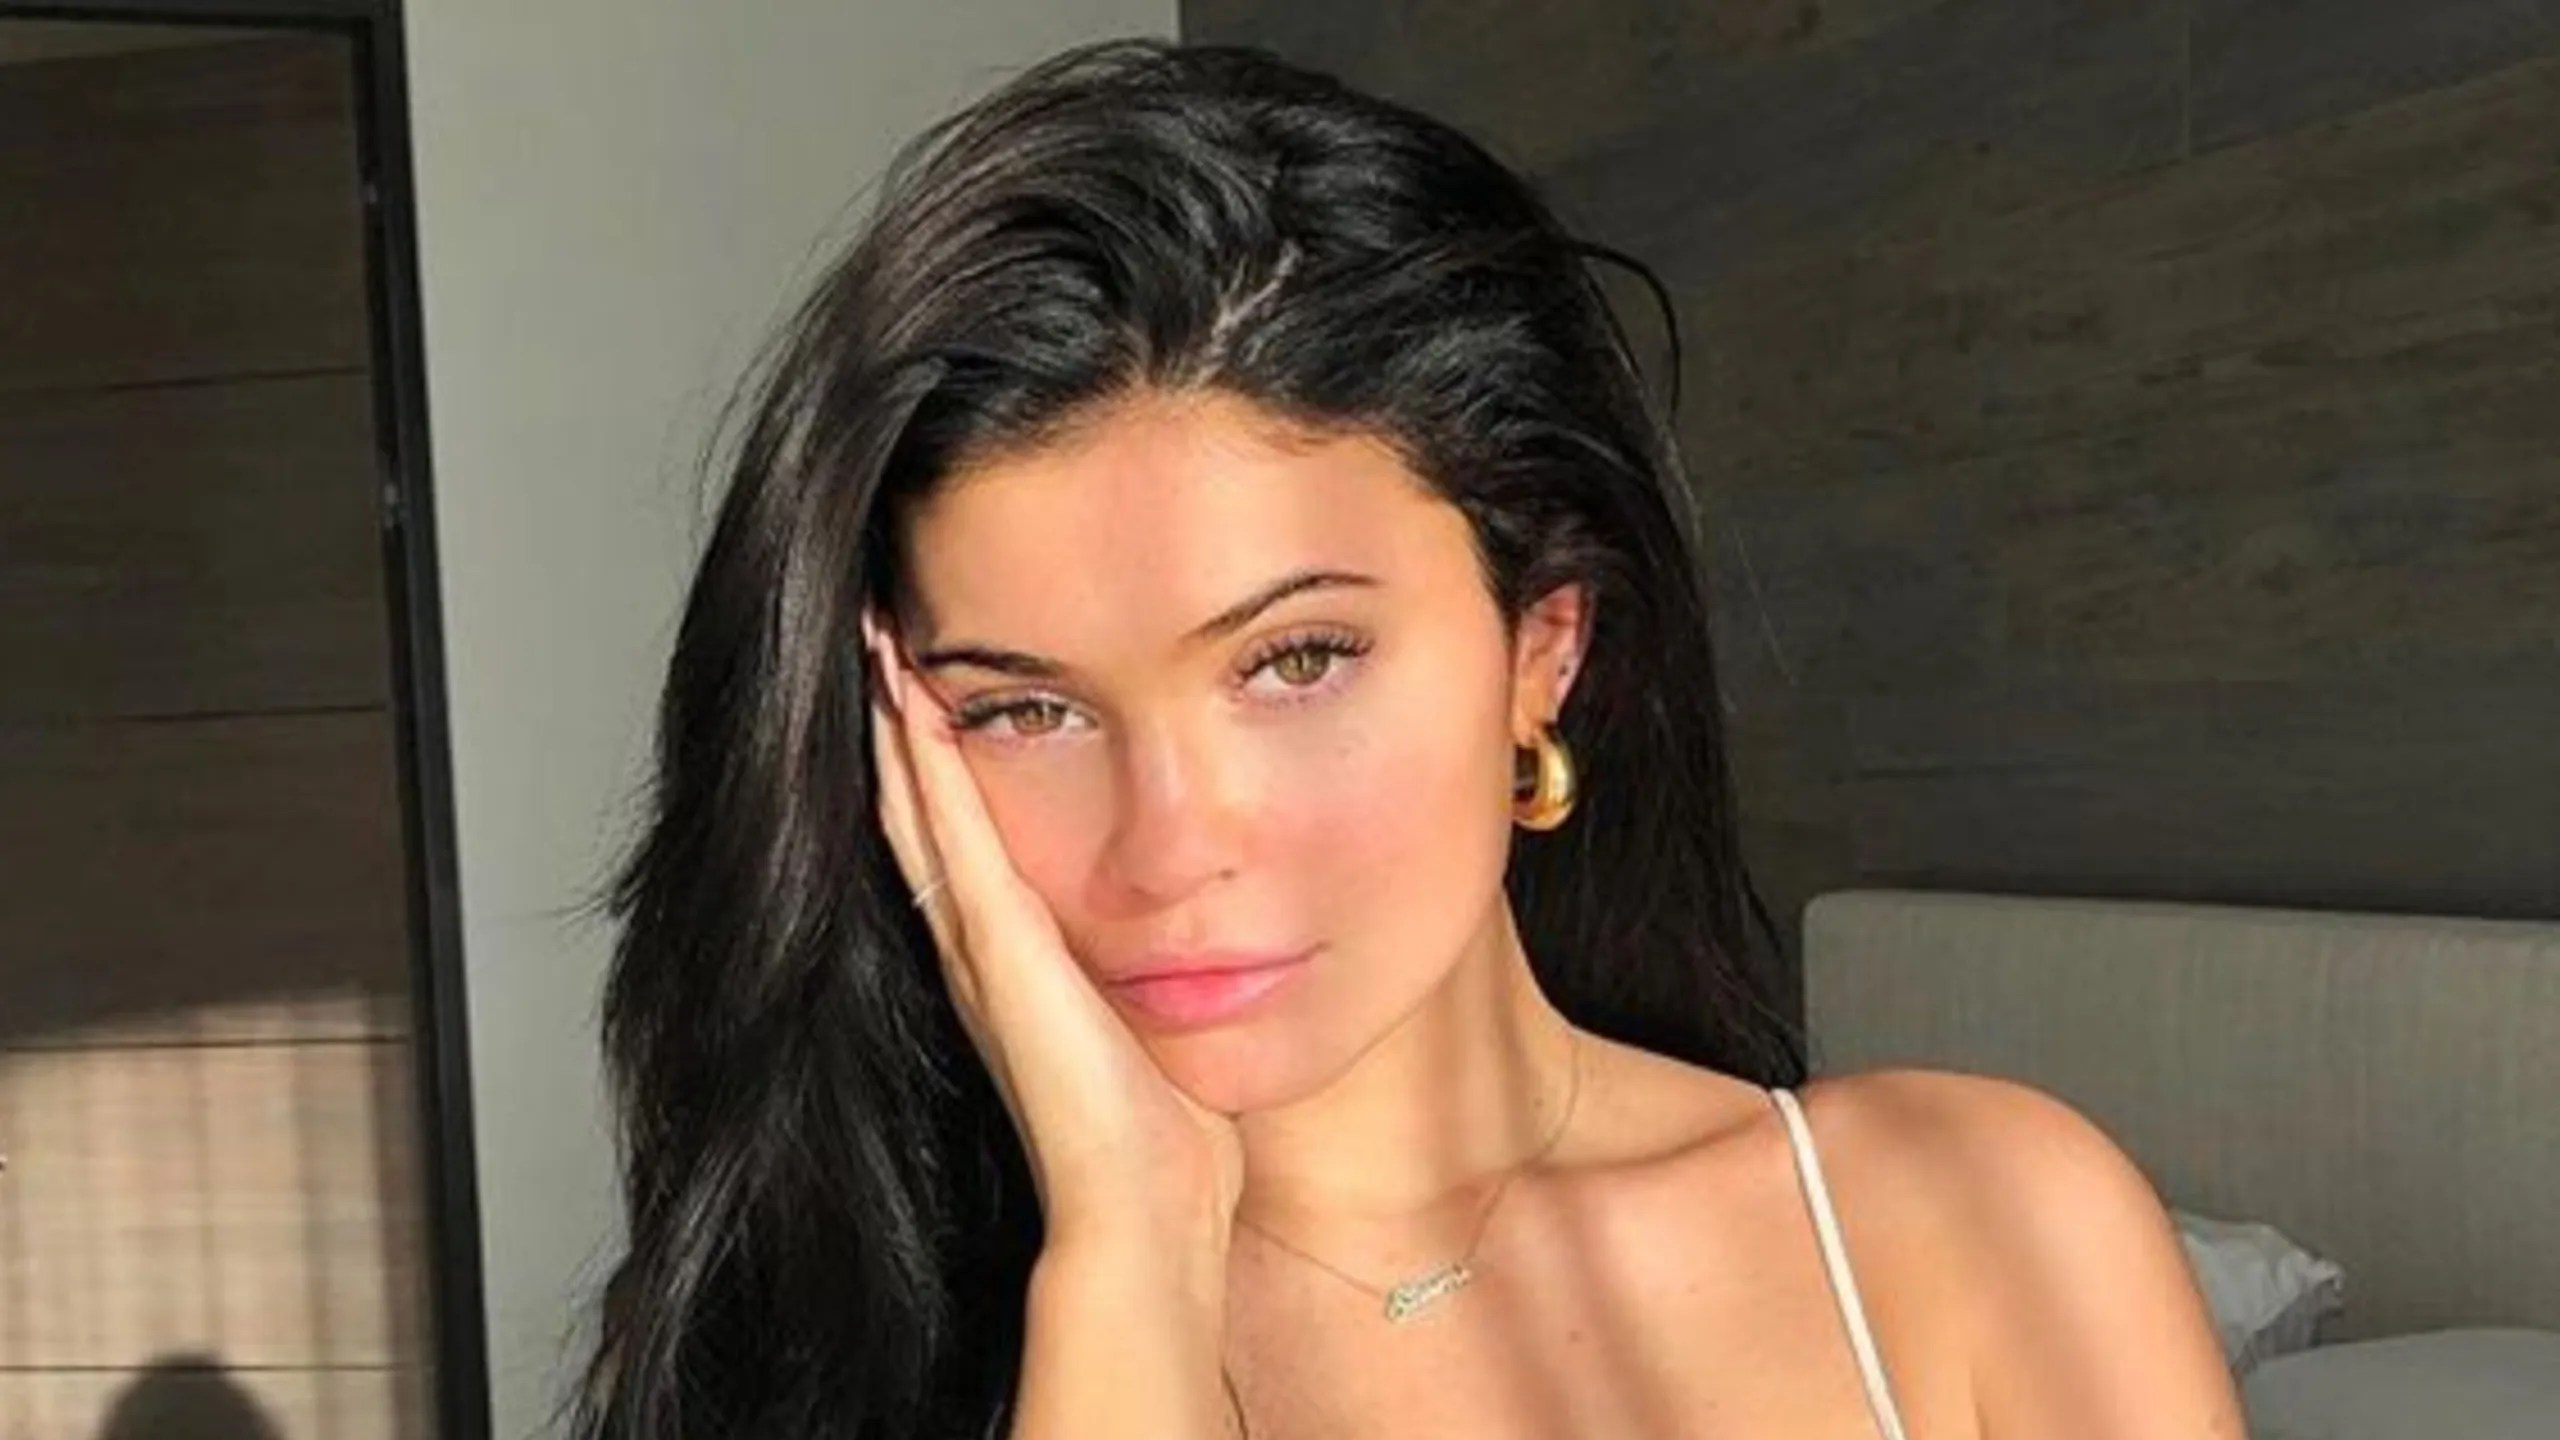 Kylie Jenner New Pictures